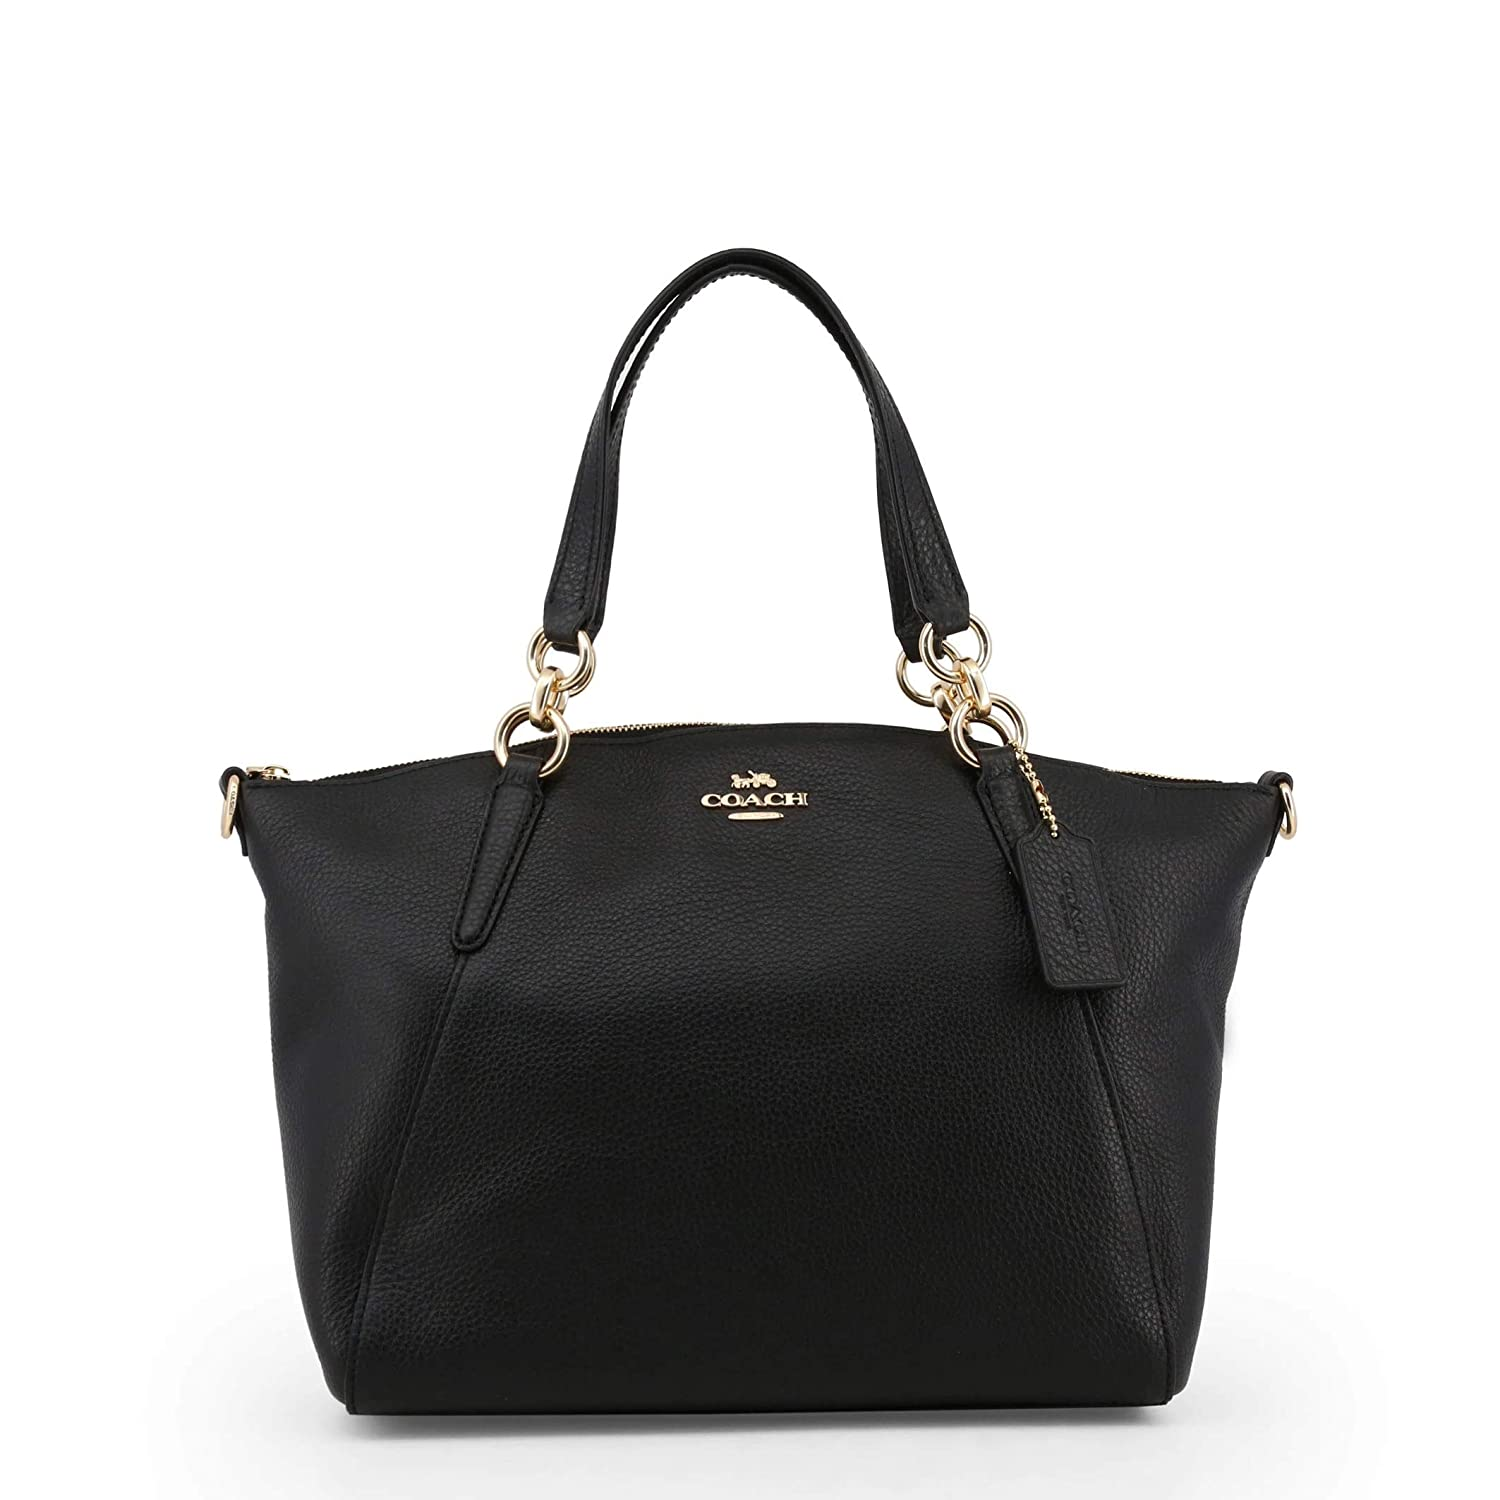 91d0025c5d56b Amazon.com: Coach 36625 Pebble Leather Small Kelsey Satchel Black: Shoes